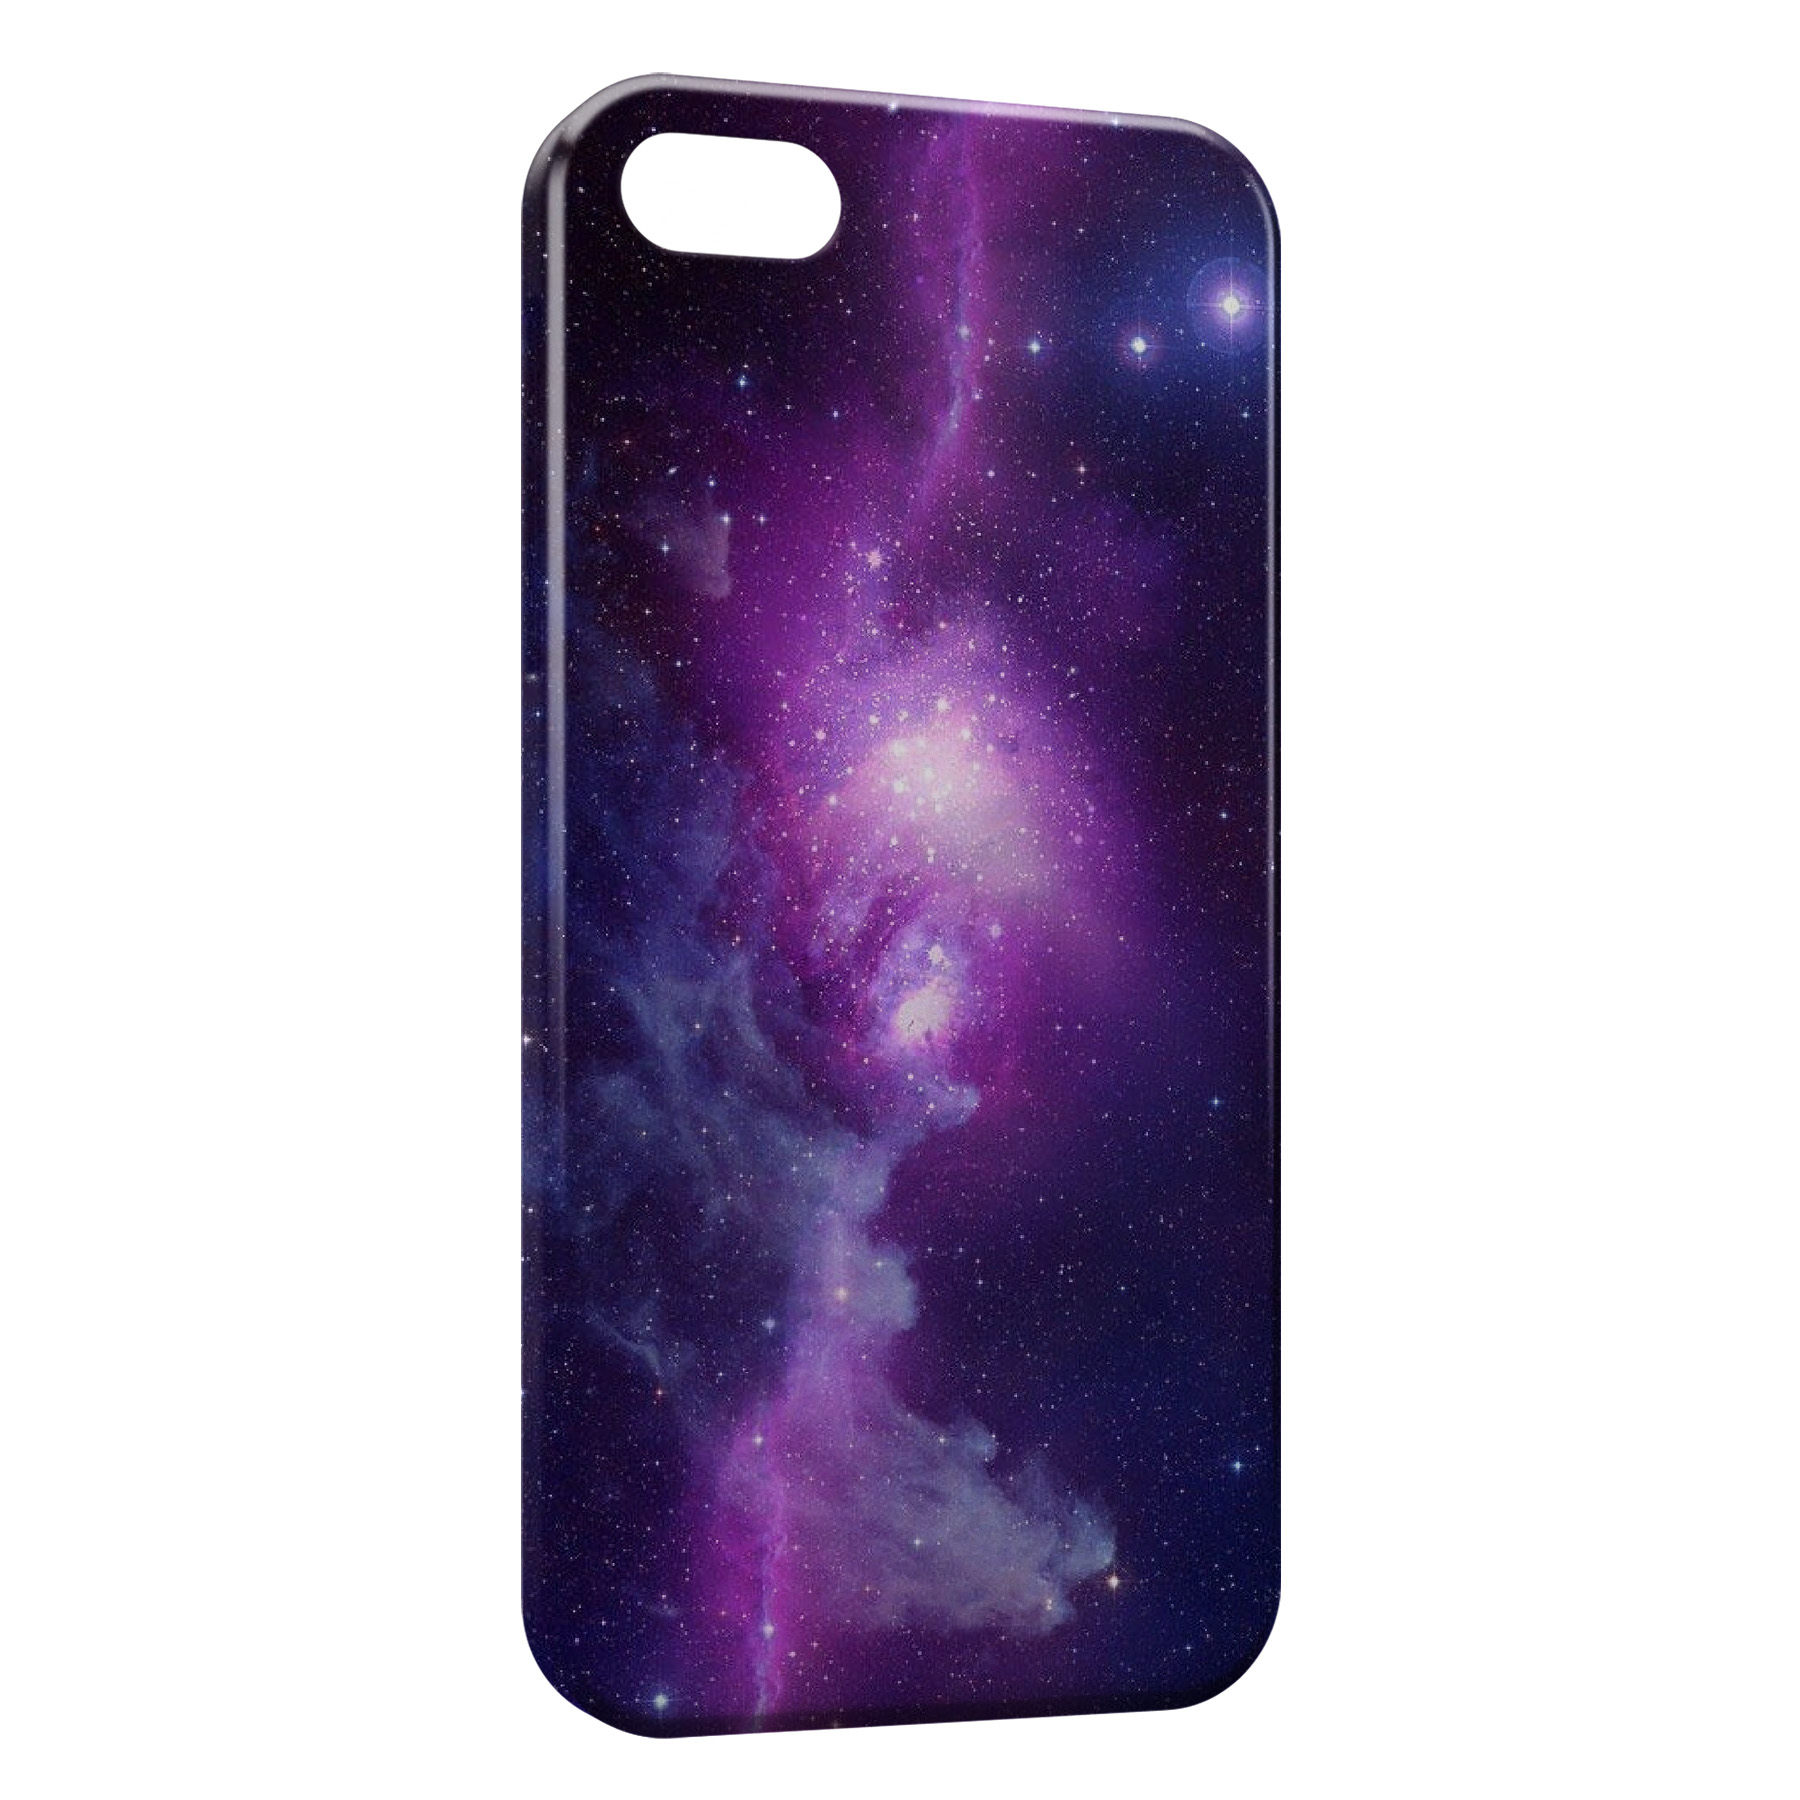 Coque iPhone 6 6S Galaxy 2 1